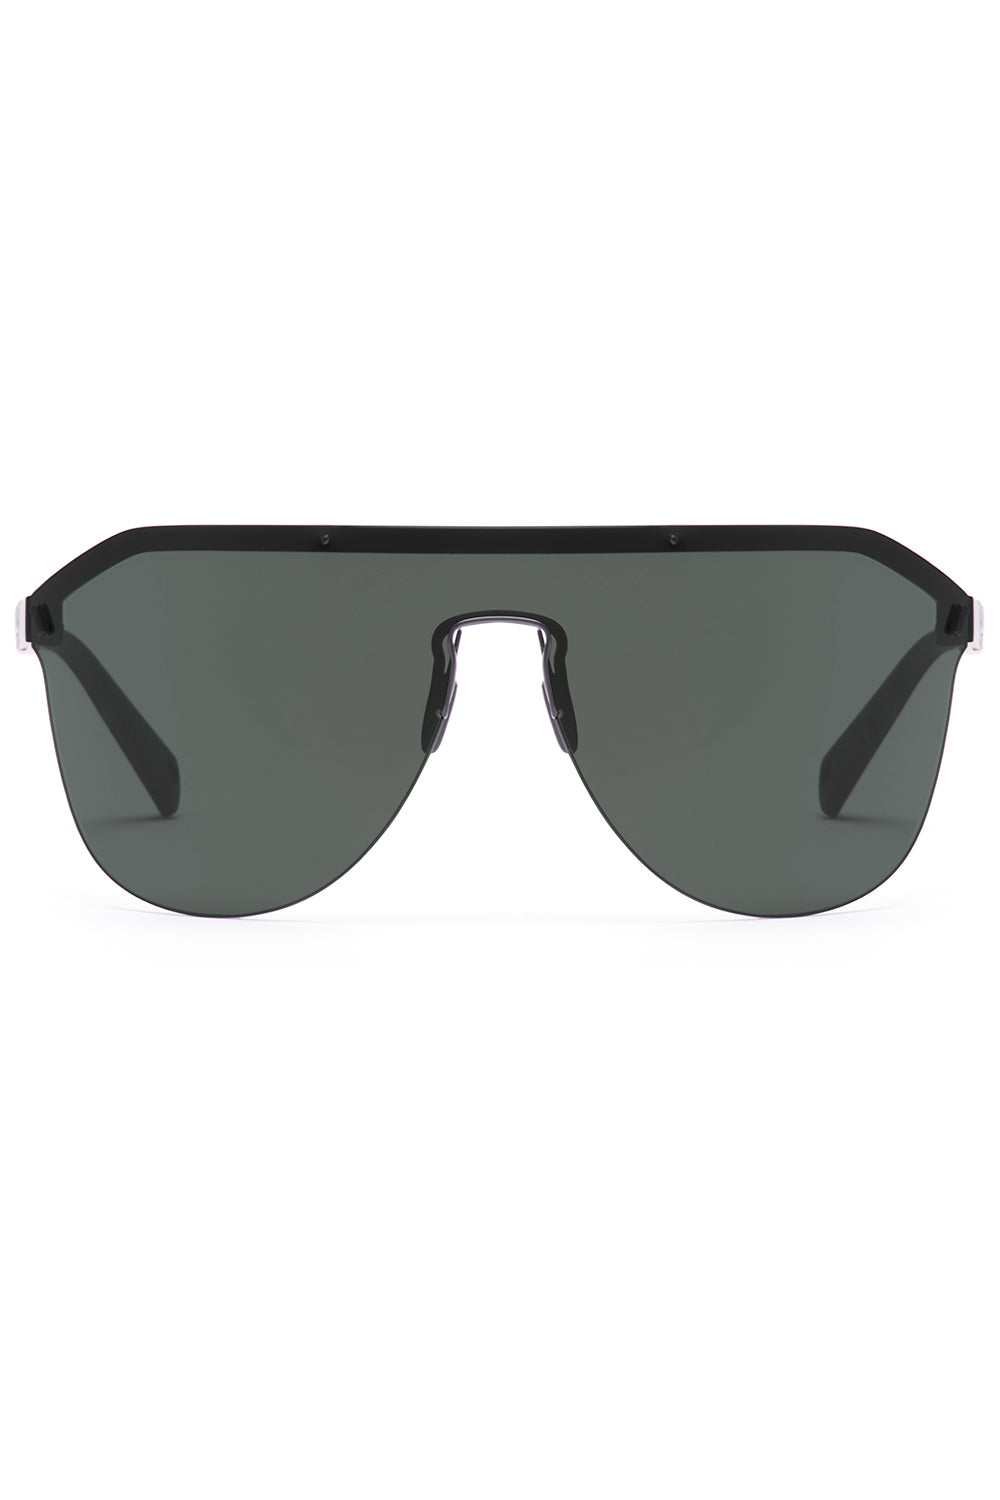 VIBE 02 Sunglasses in Black